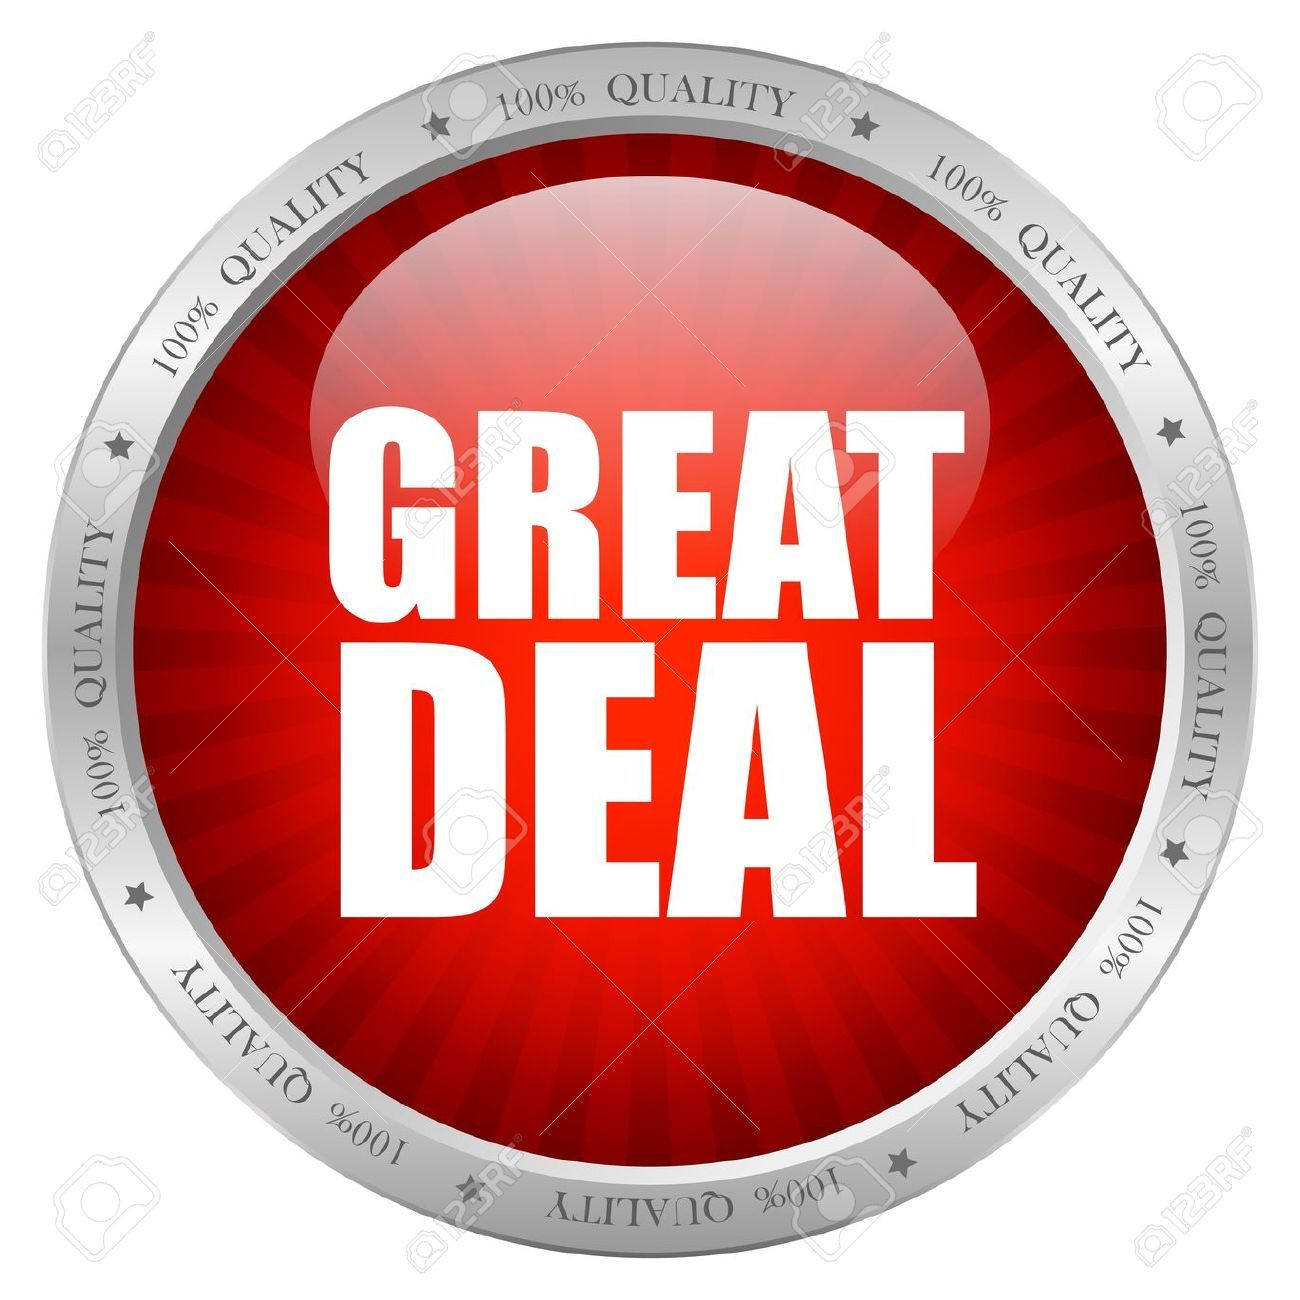 15559570-Great-deal-icon-vector-illustration-Stock-Vector